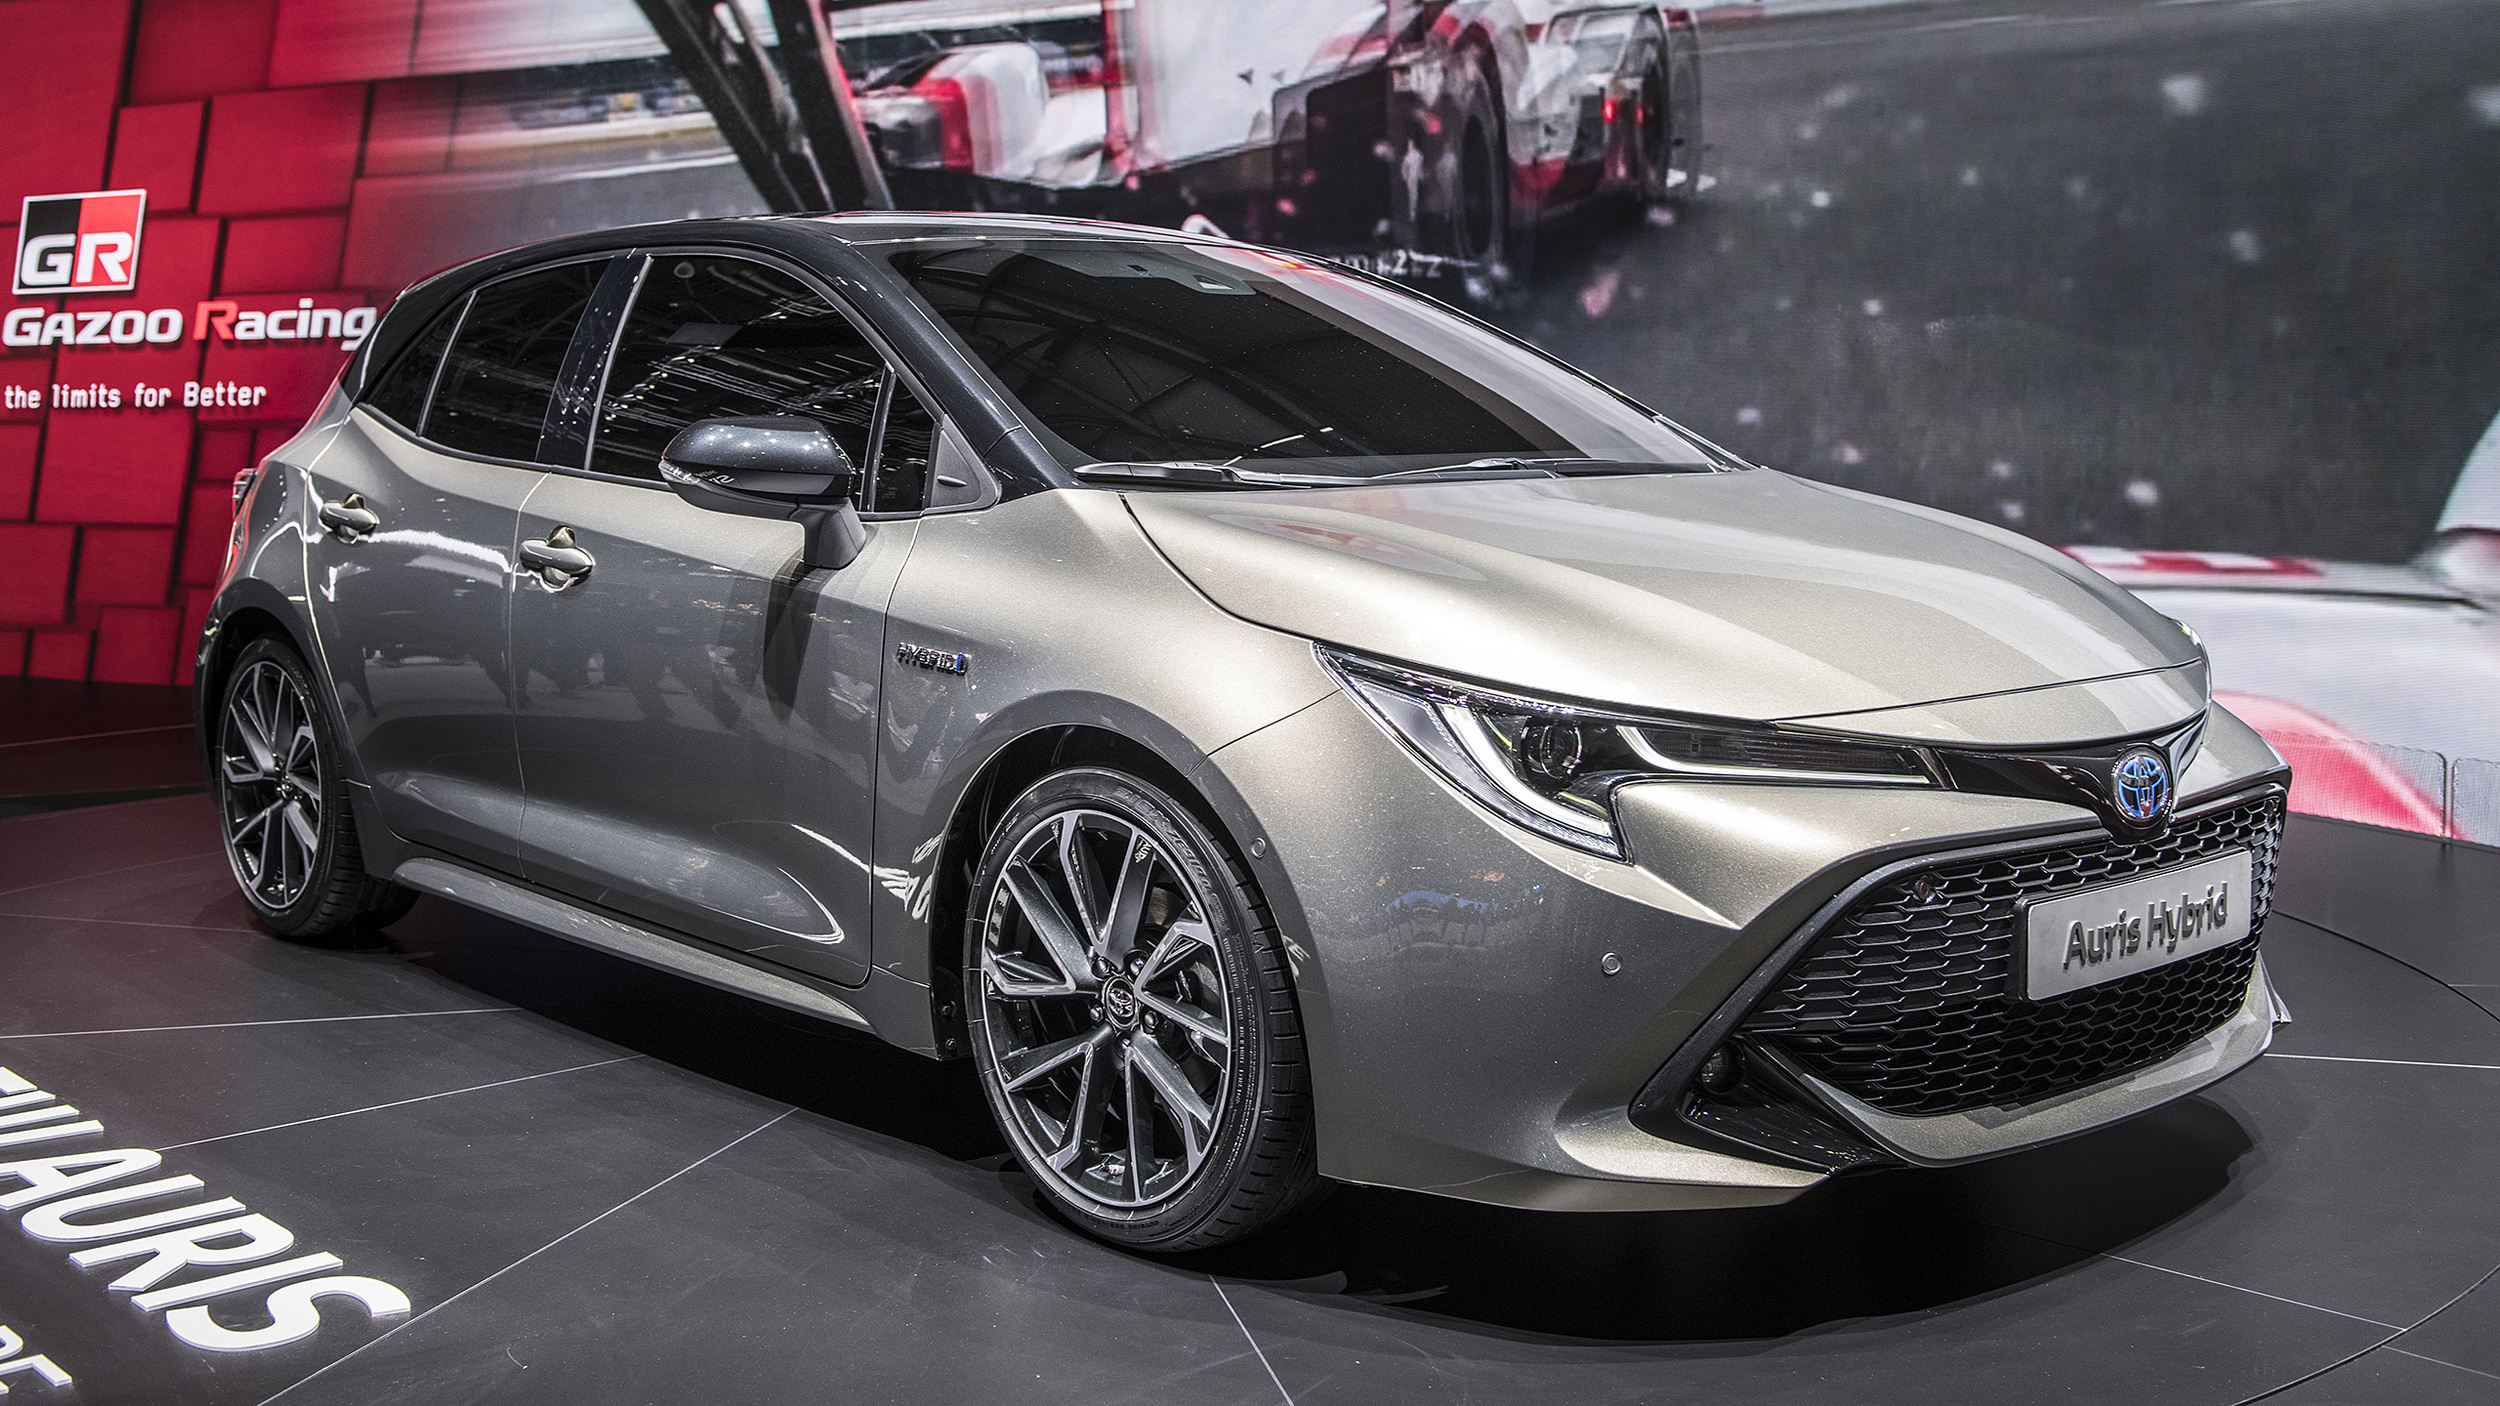 2018 toyota auris hybrid geneva 2018 autoblog. Black Bedroom Furniture Sets. Home Design Ideas